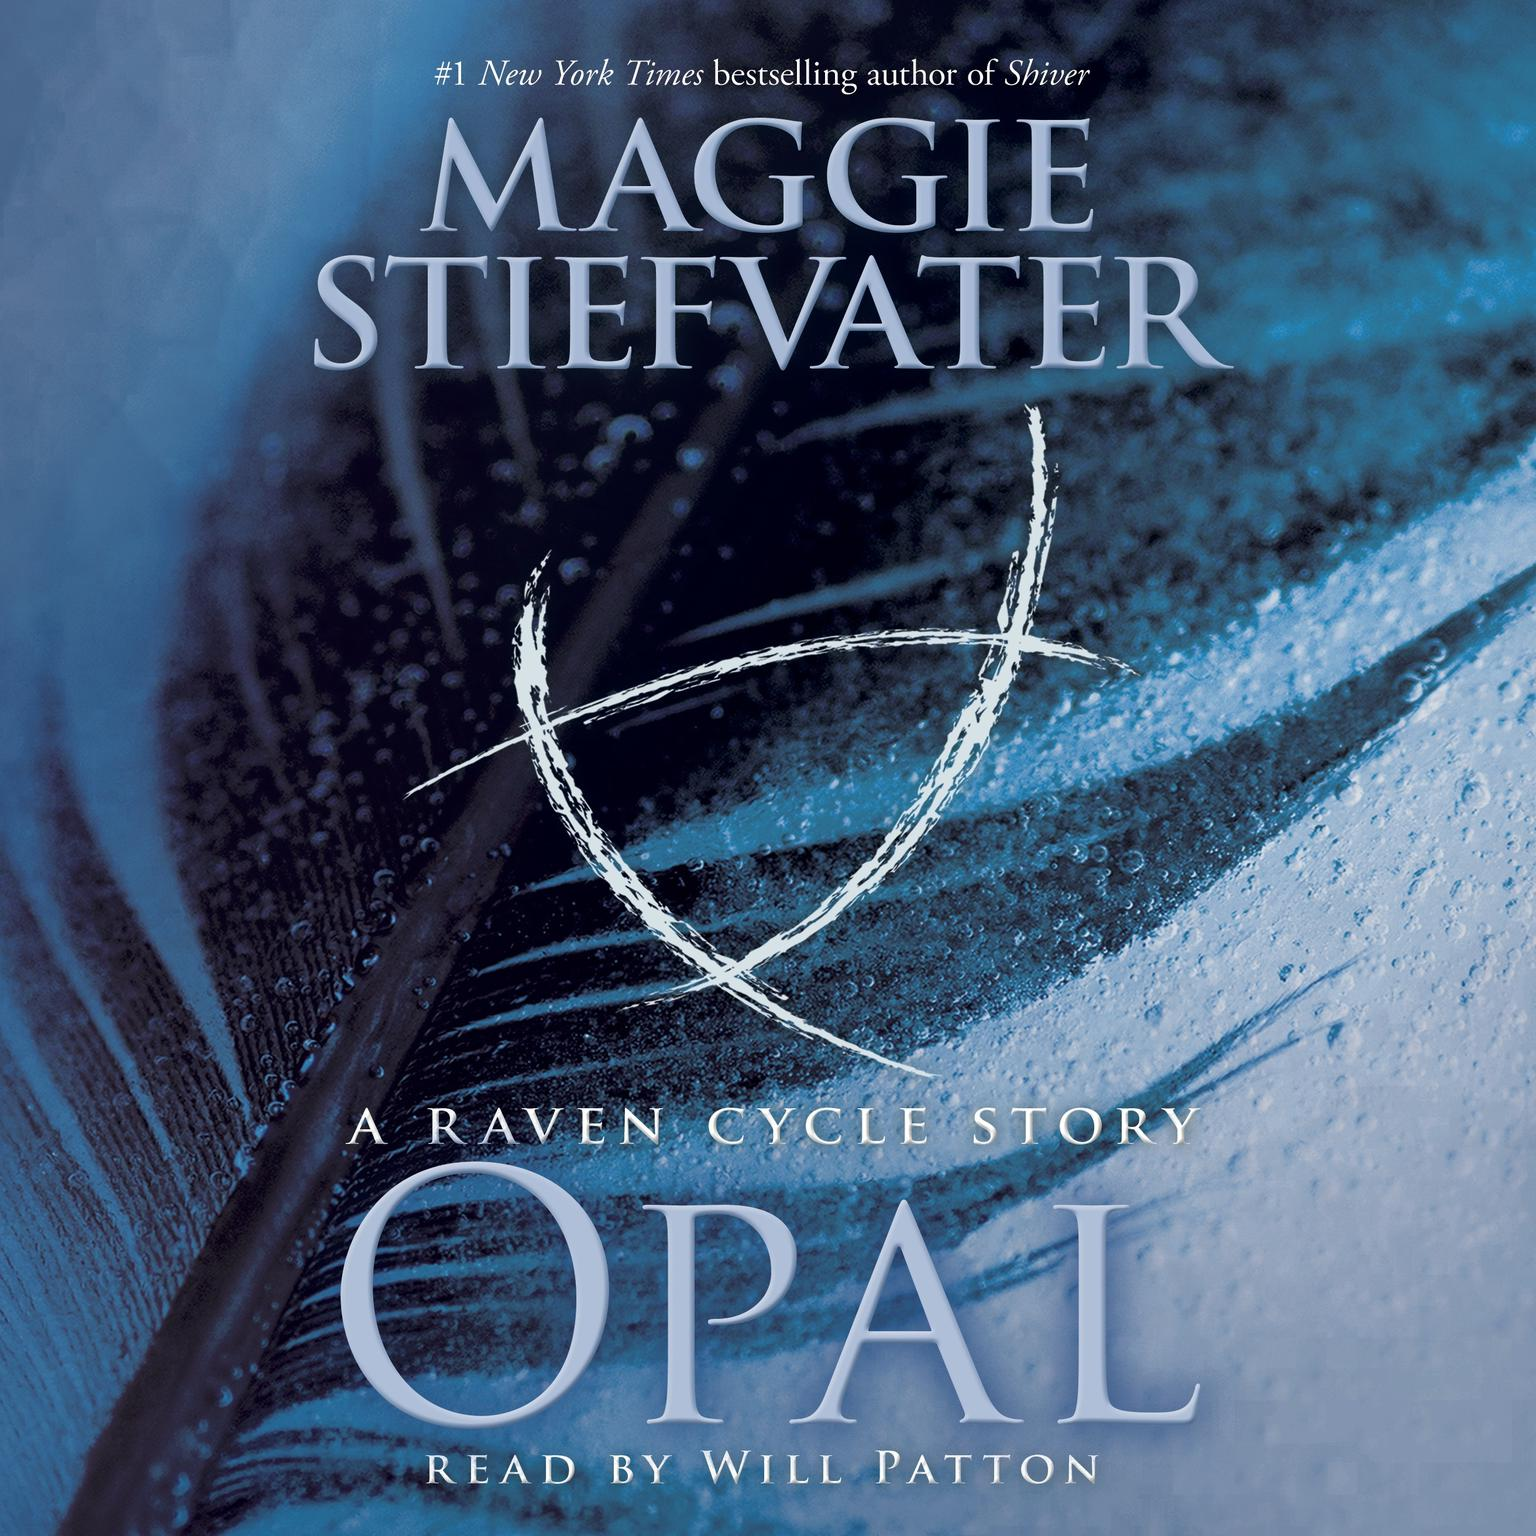 Printable Opal: A Raven Cycle Story: A Raven Cycle Story Audiobook Cover Art